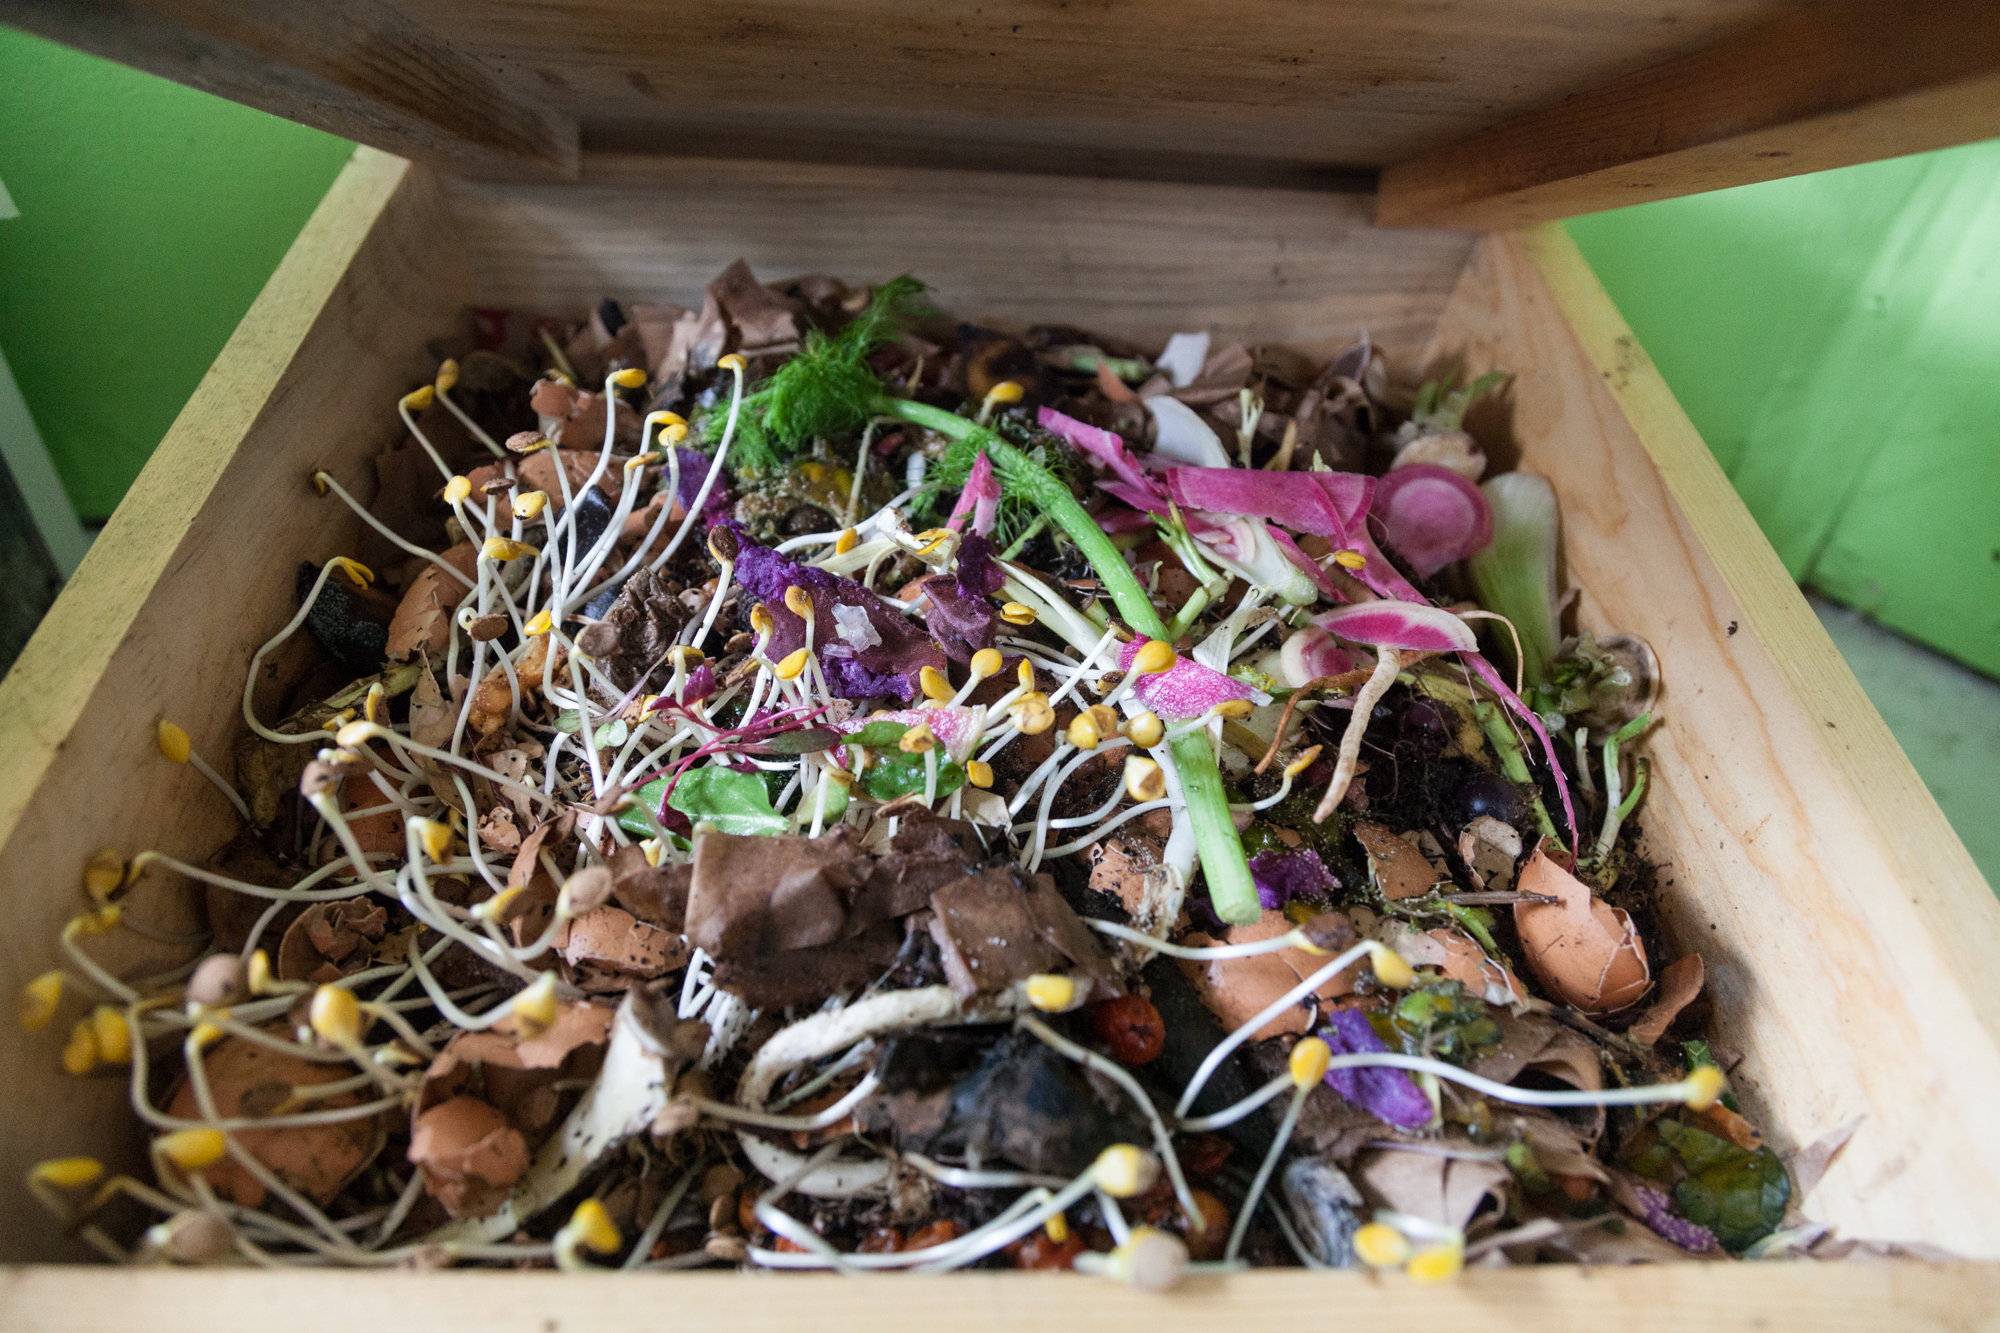 How to make worms compost faster